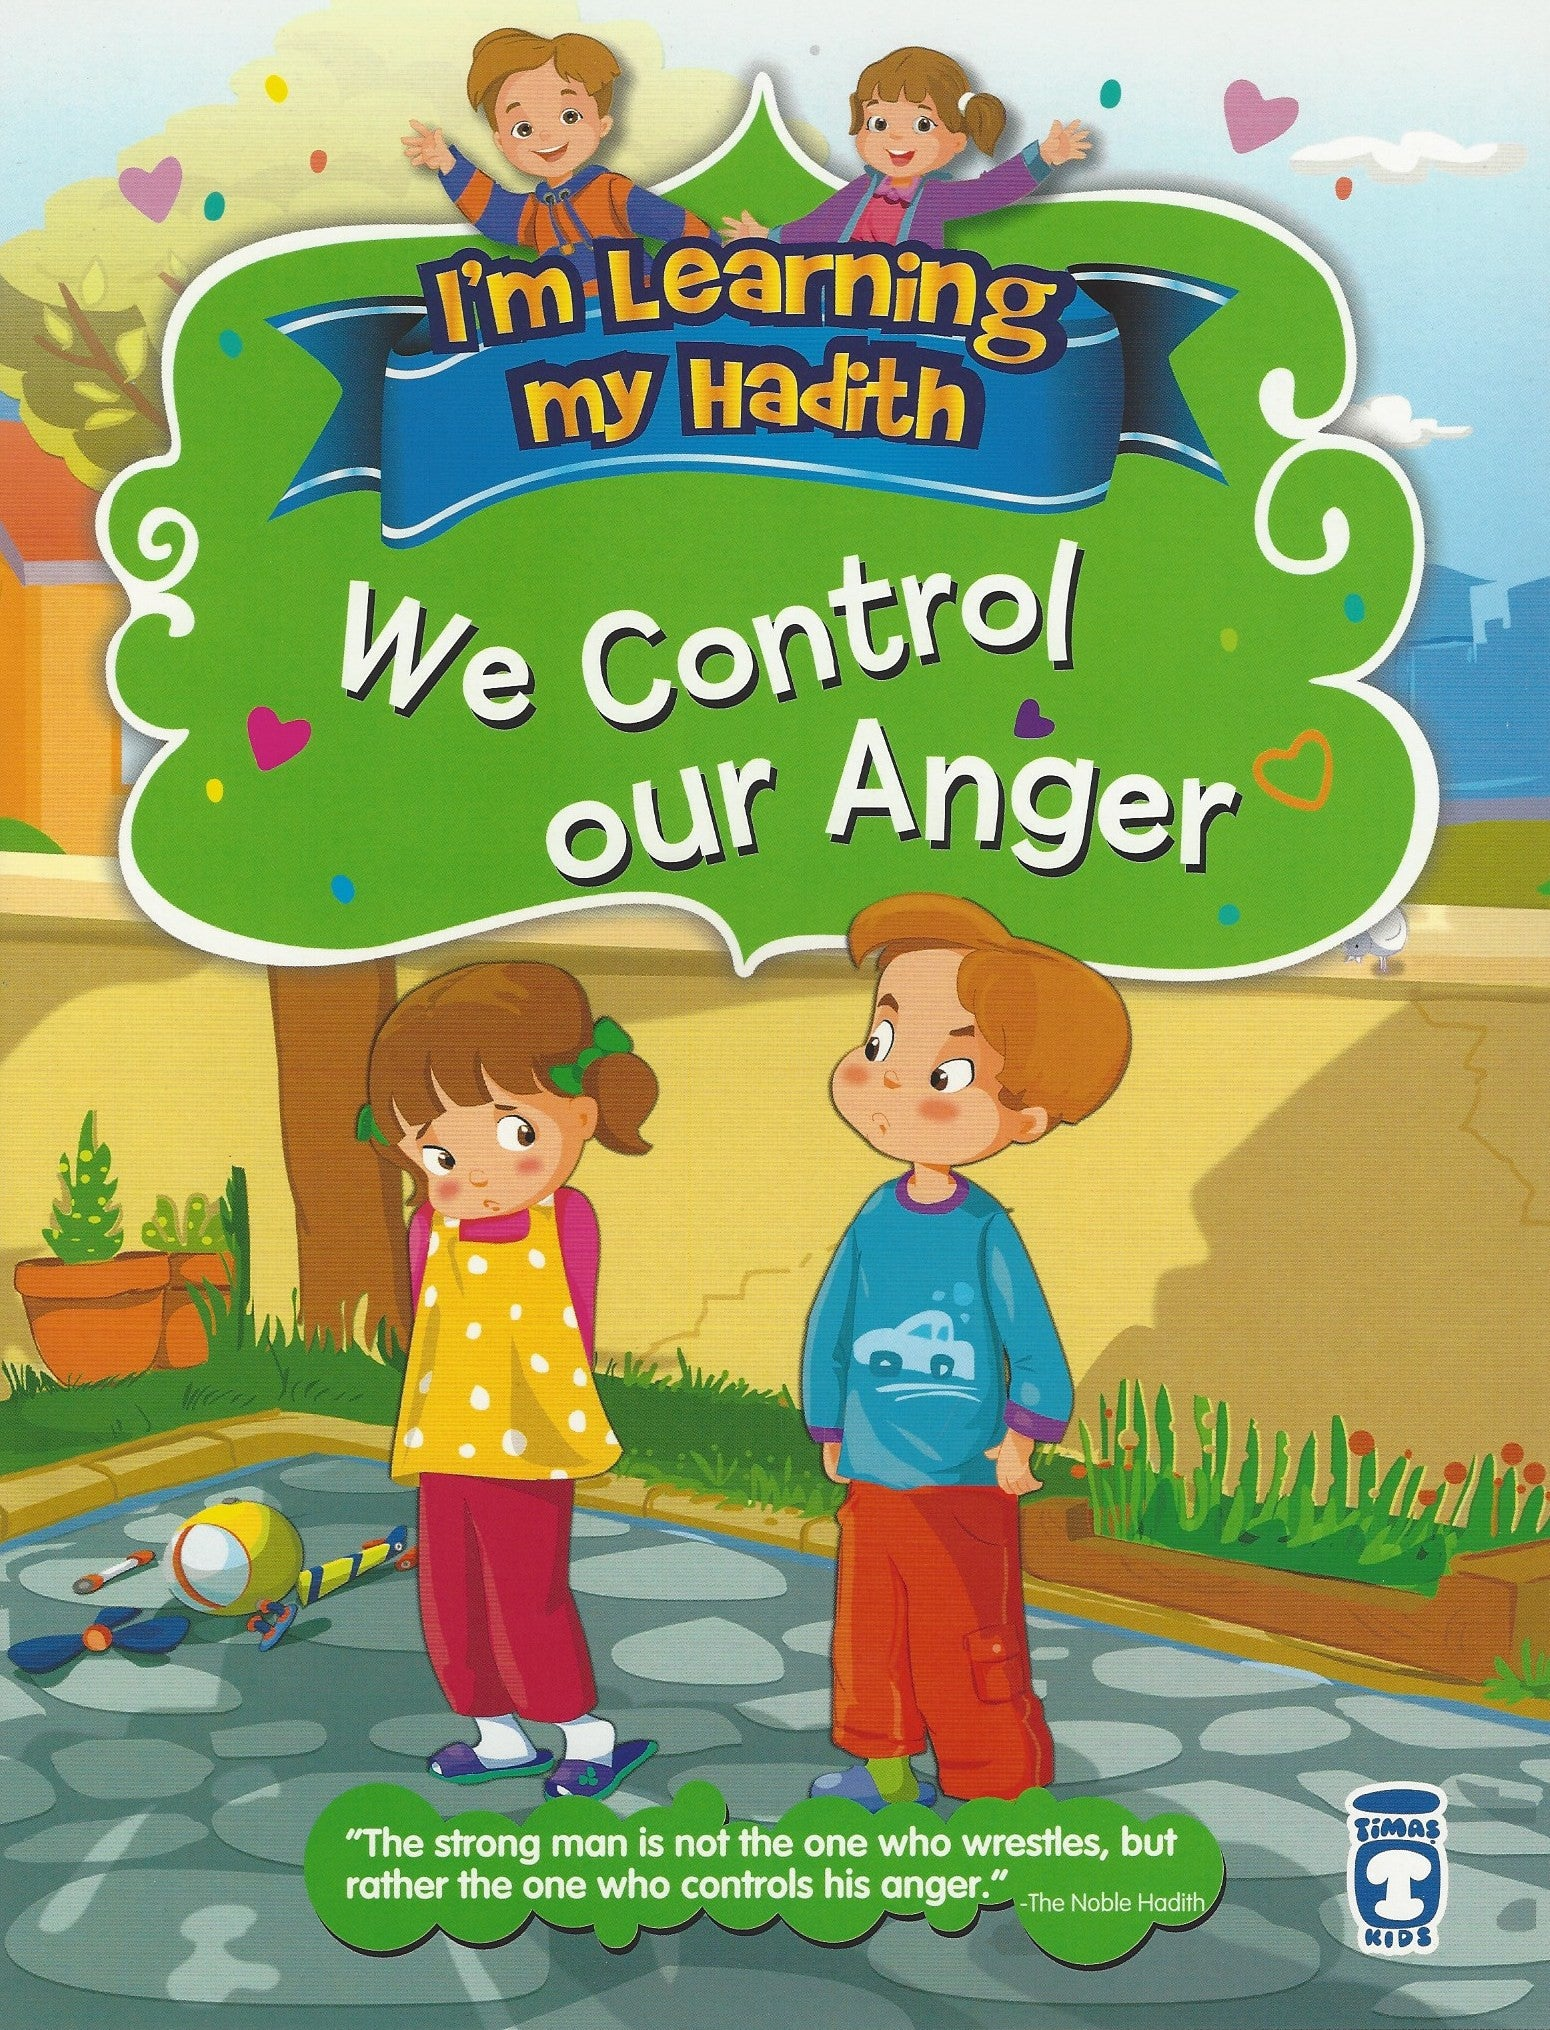 I'm Learning My Hadith (10 volumes) We Control Our Anger, Book - Daybreak International Bookstore, Daybreak Press Global Bookshop  - 3